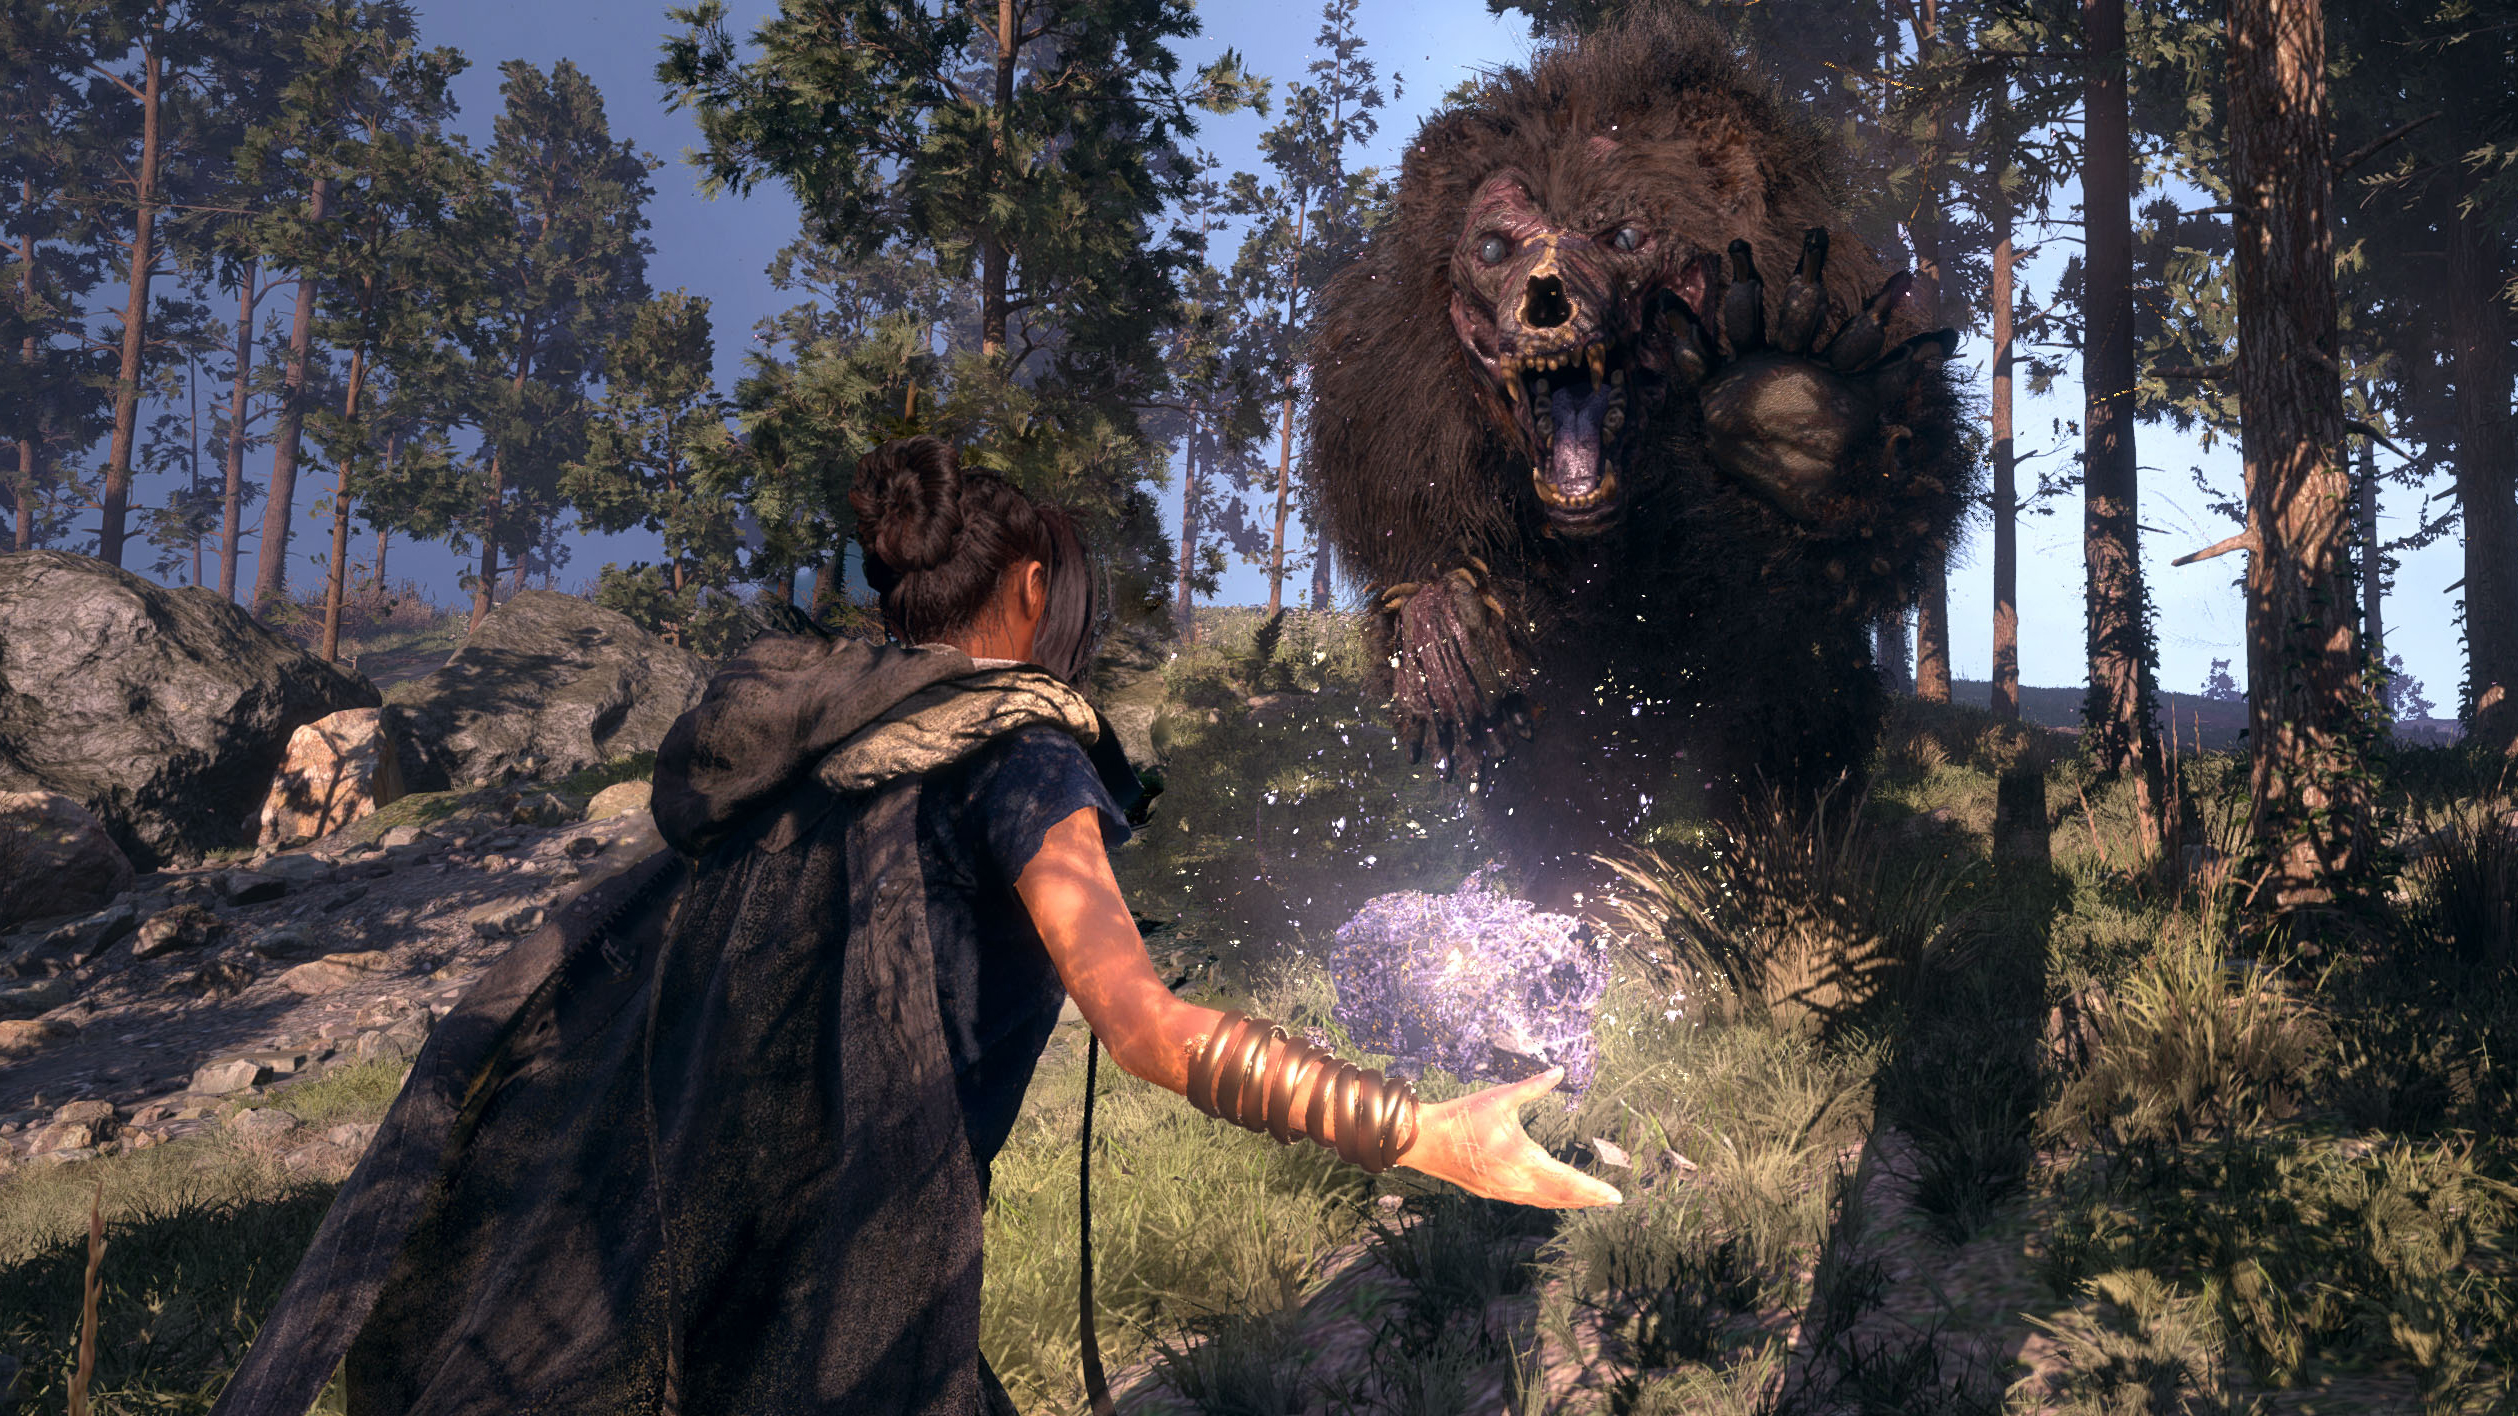 Battle dragons and zombie bears in Square Enix's Forspoken, coming in 2022